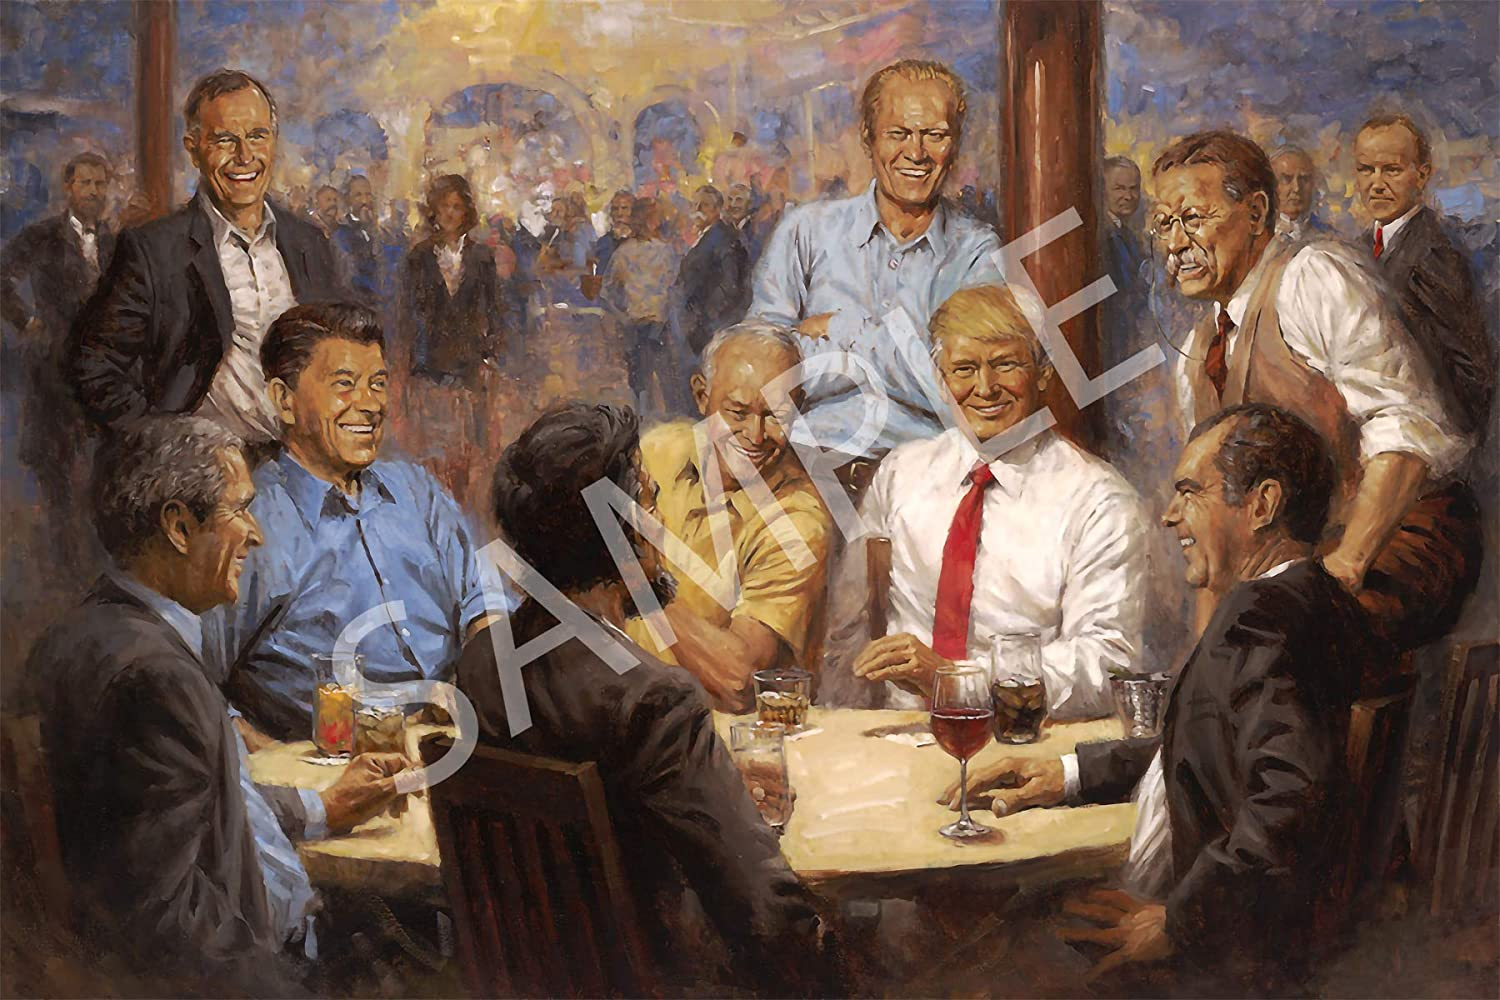 Best Print Store - Republican, The Republican Club Painting, Poster (11x17 inches)